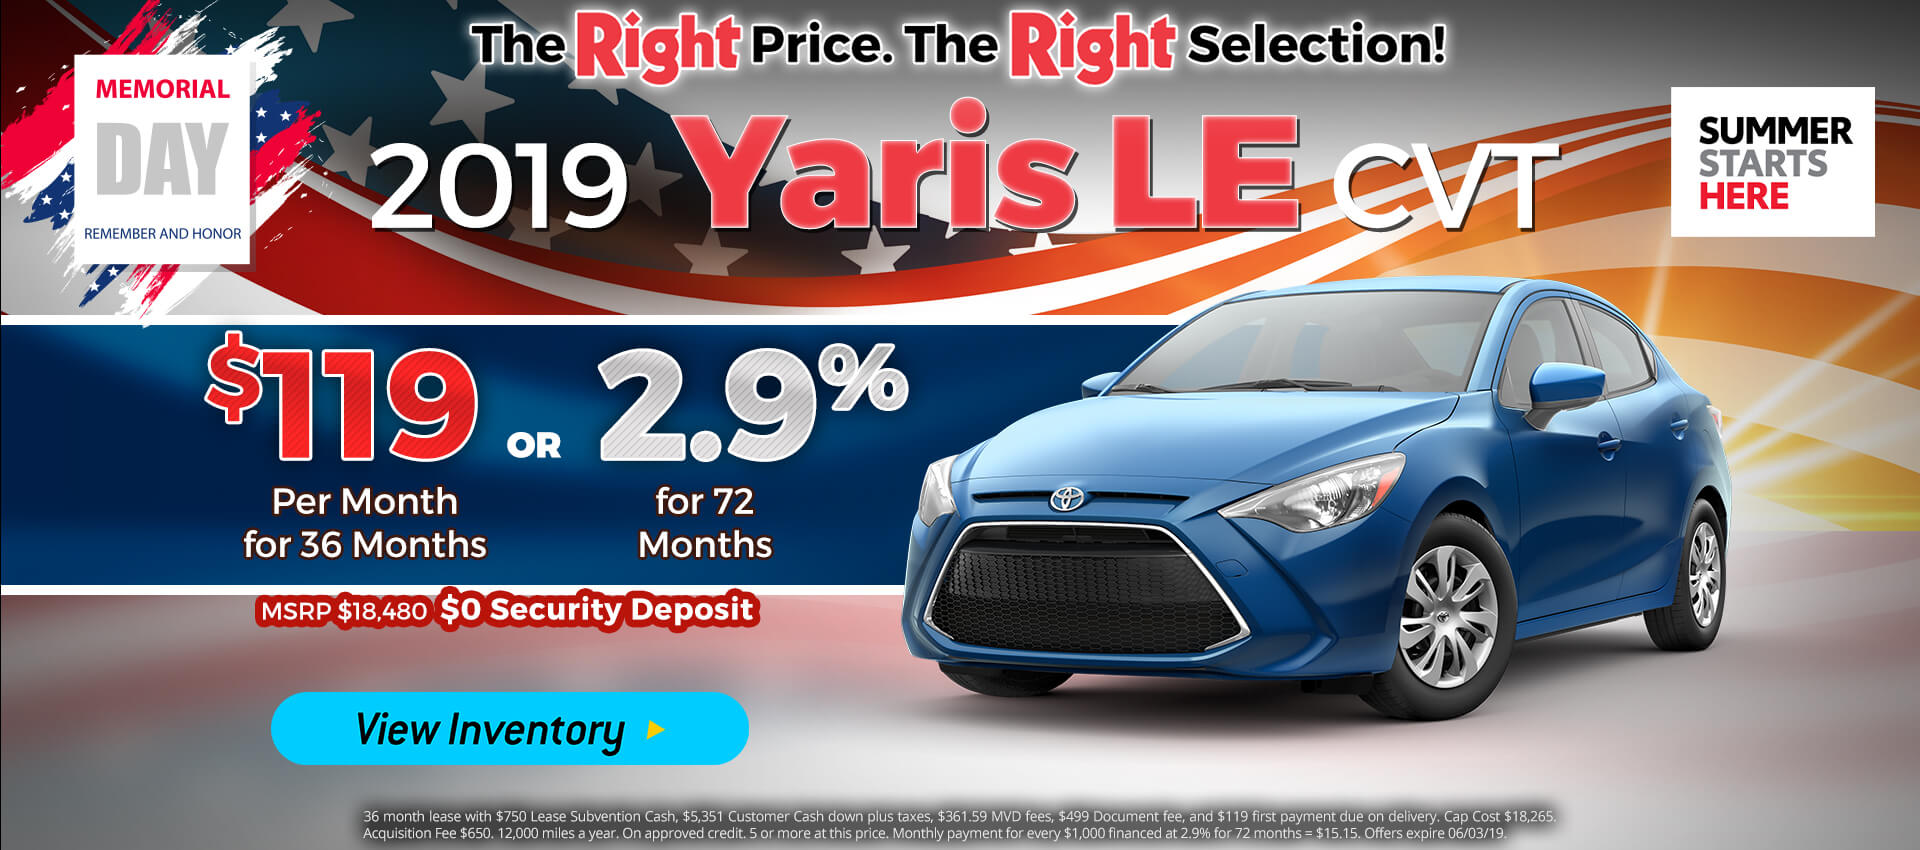 Yaris - Lease for $119